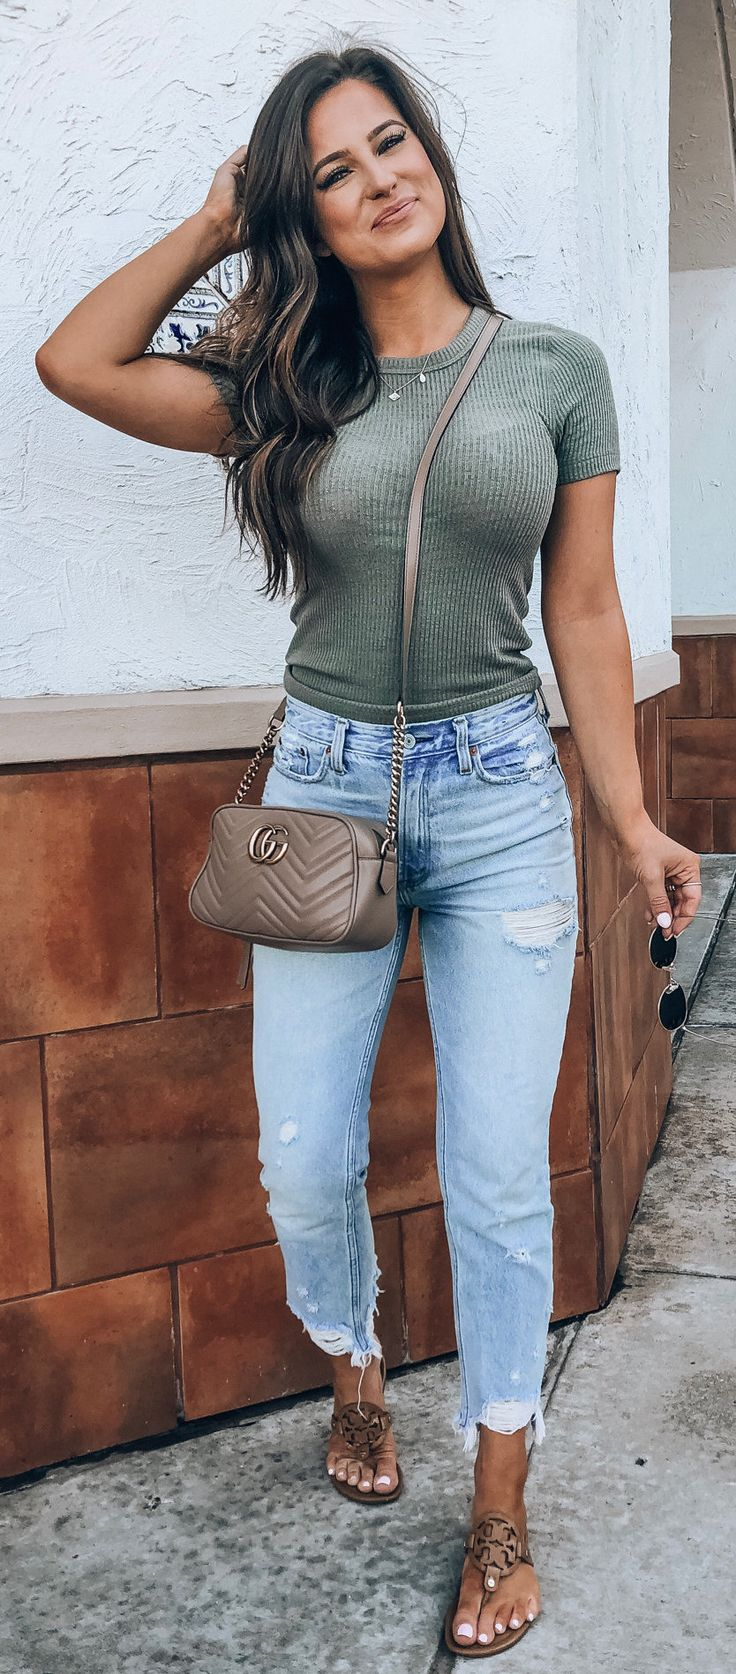 30+ Ultimate Summer Outfits To Stand Out From The Crowd